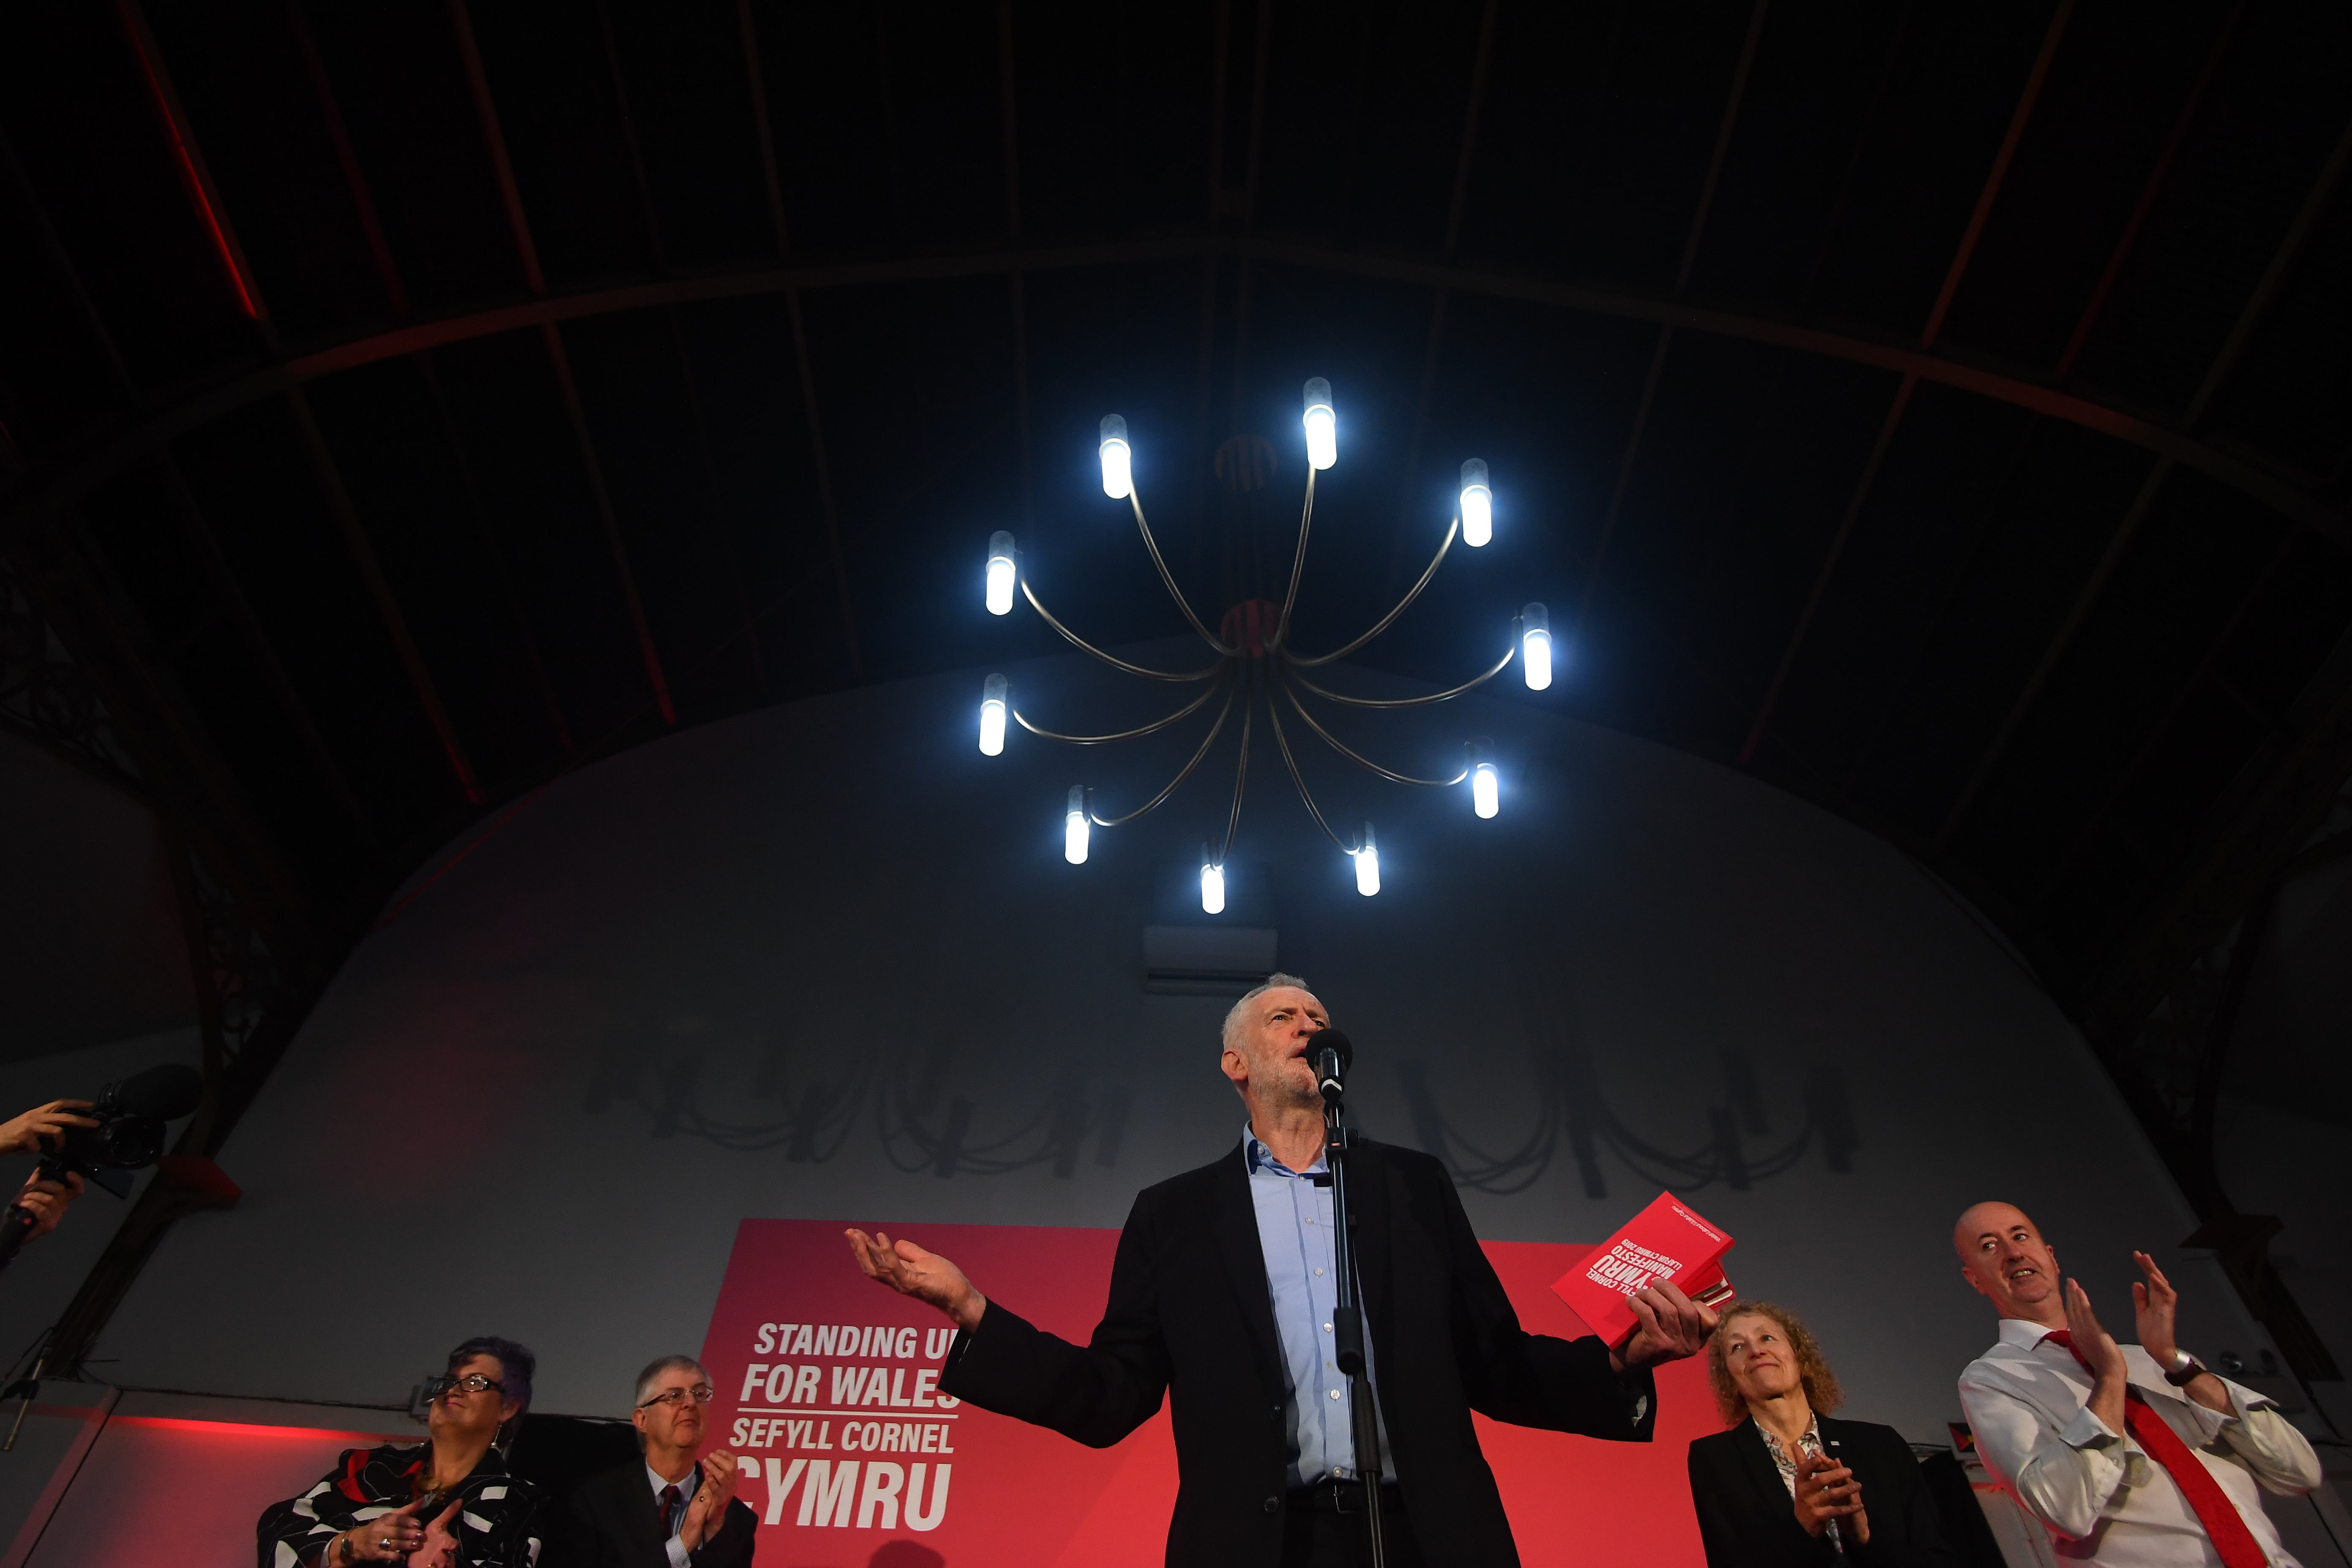 Labour Party leader Jeremy Corbyn speaking at the Patti Pavilion in Swansea, while on the General Election campaign trail in Wales.